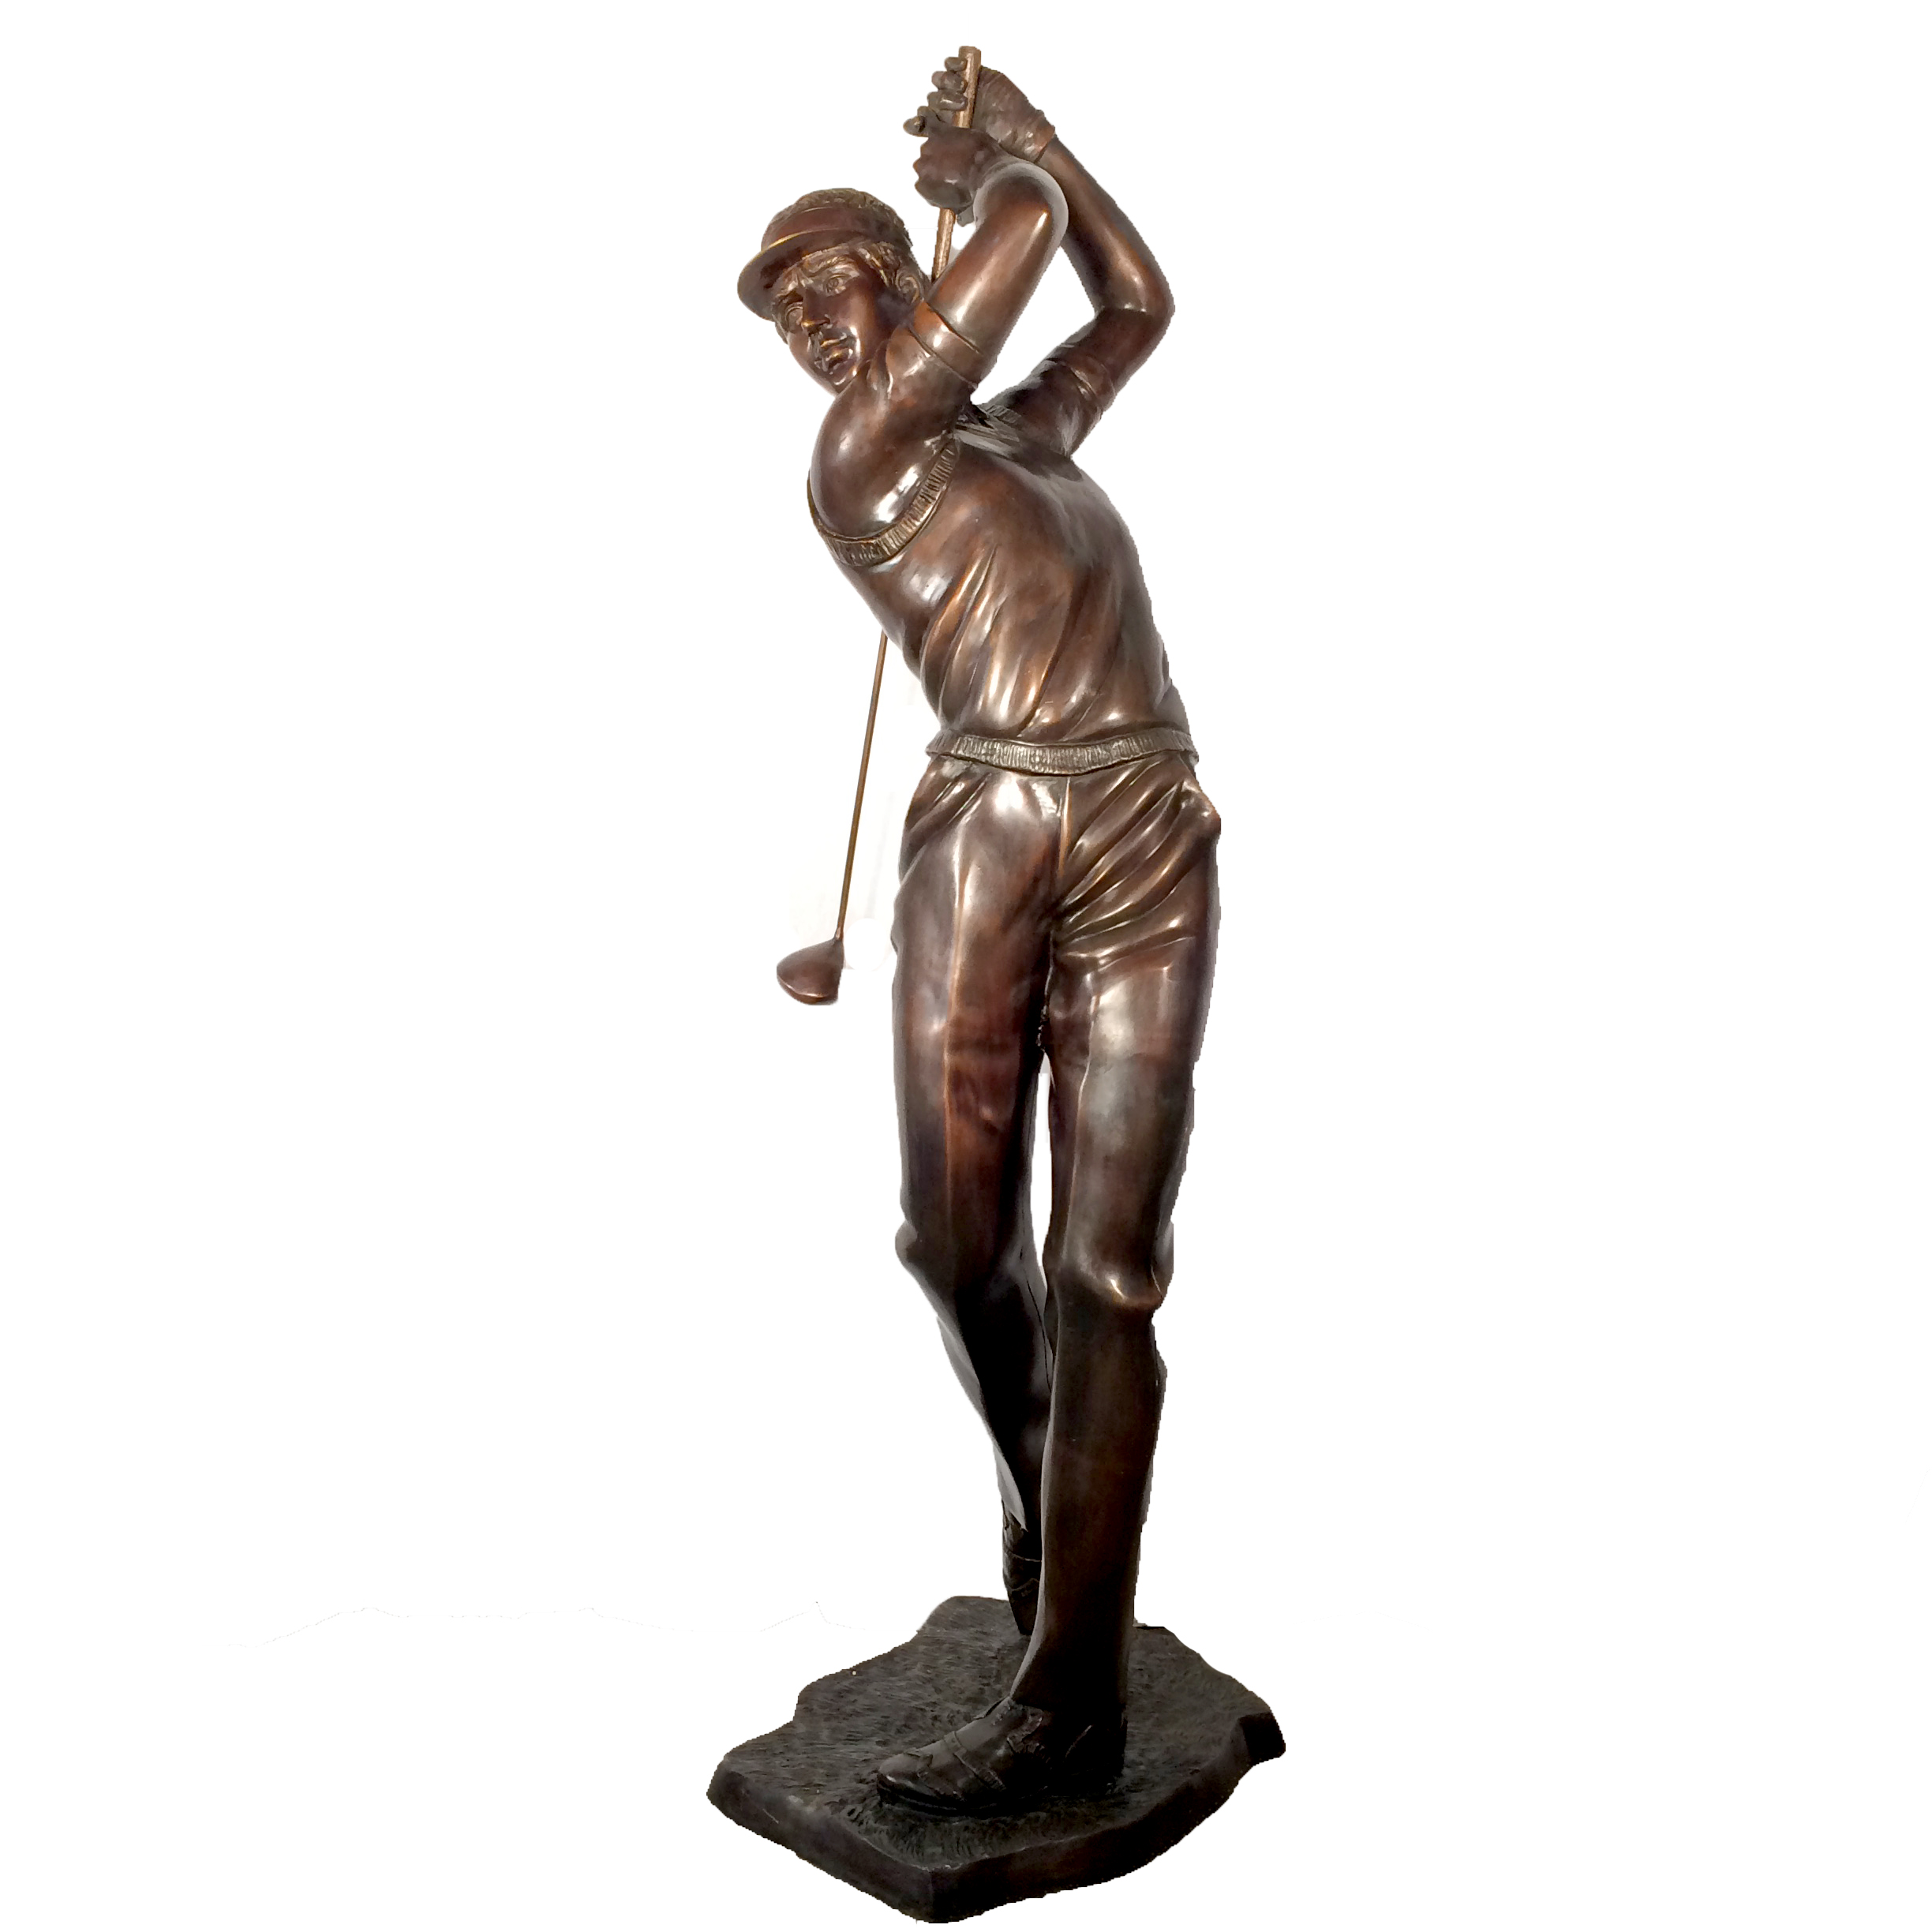 SRB705035 Bronze Golfer Swinging Club Sculpture Metropolitan Galleries Inc.